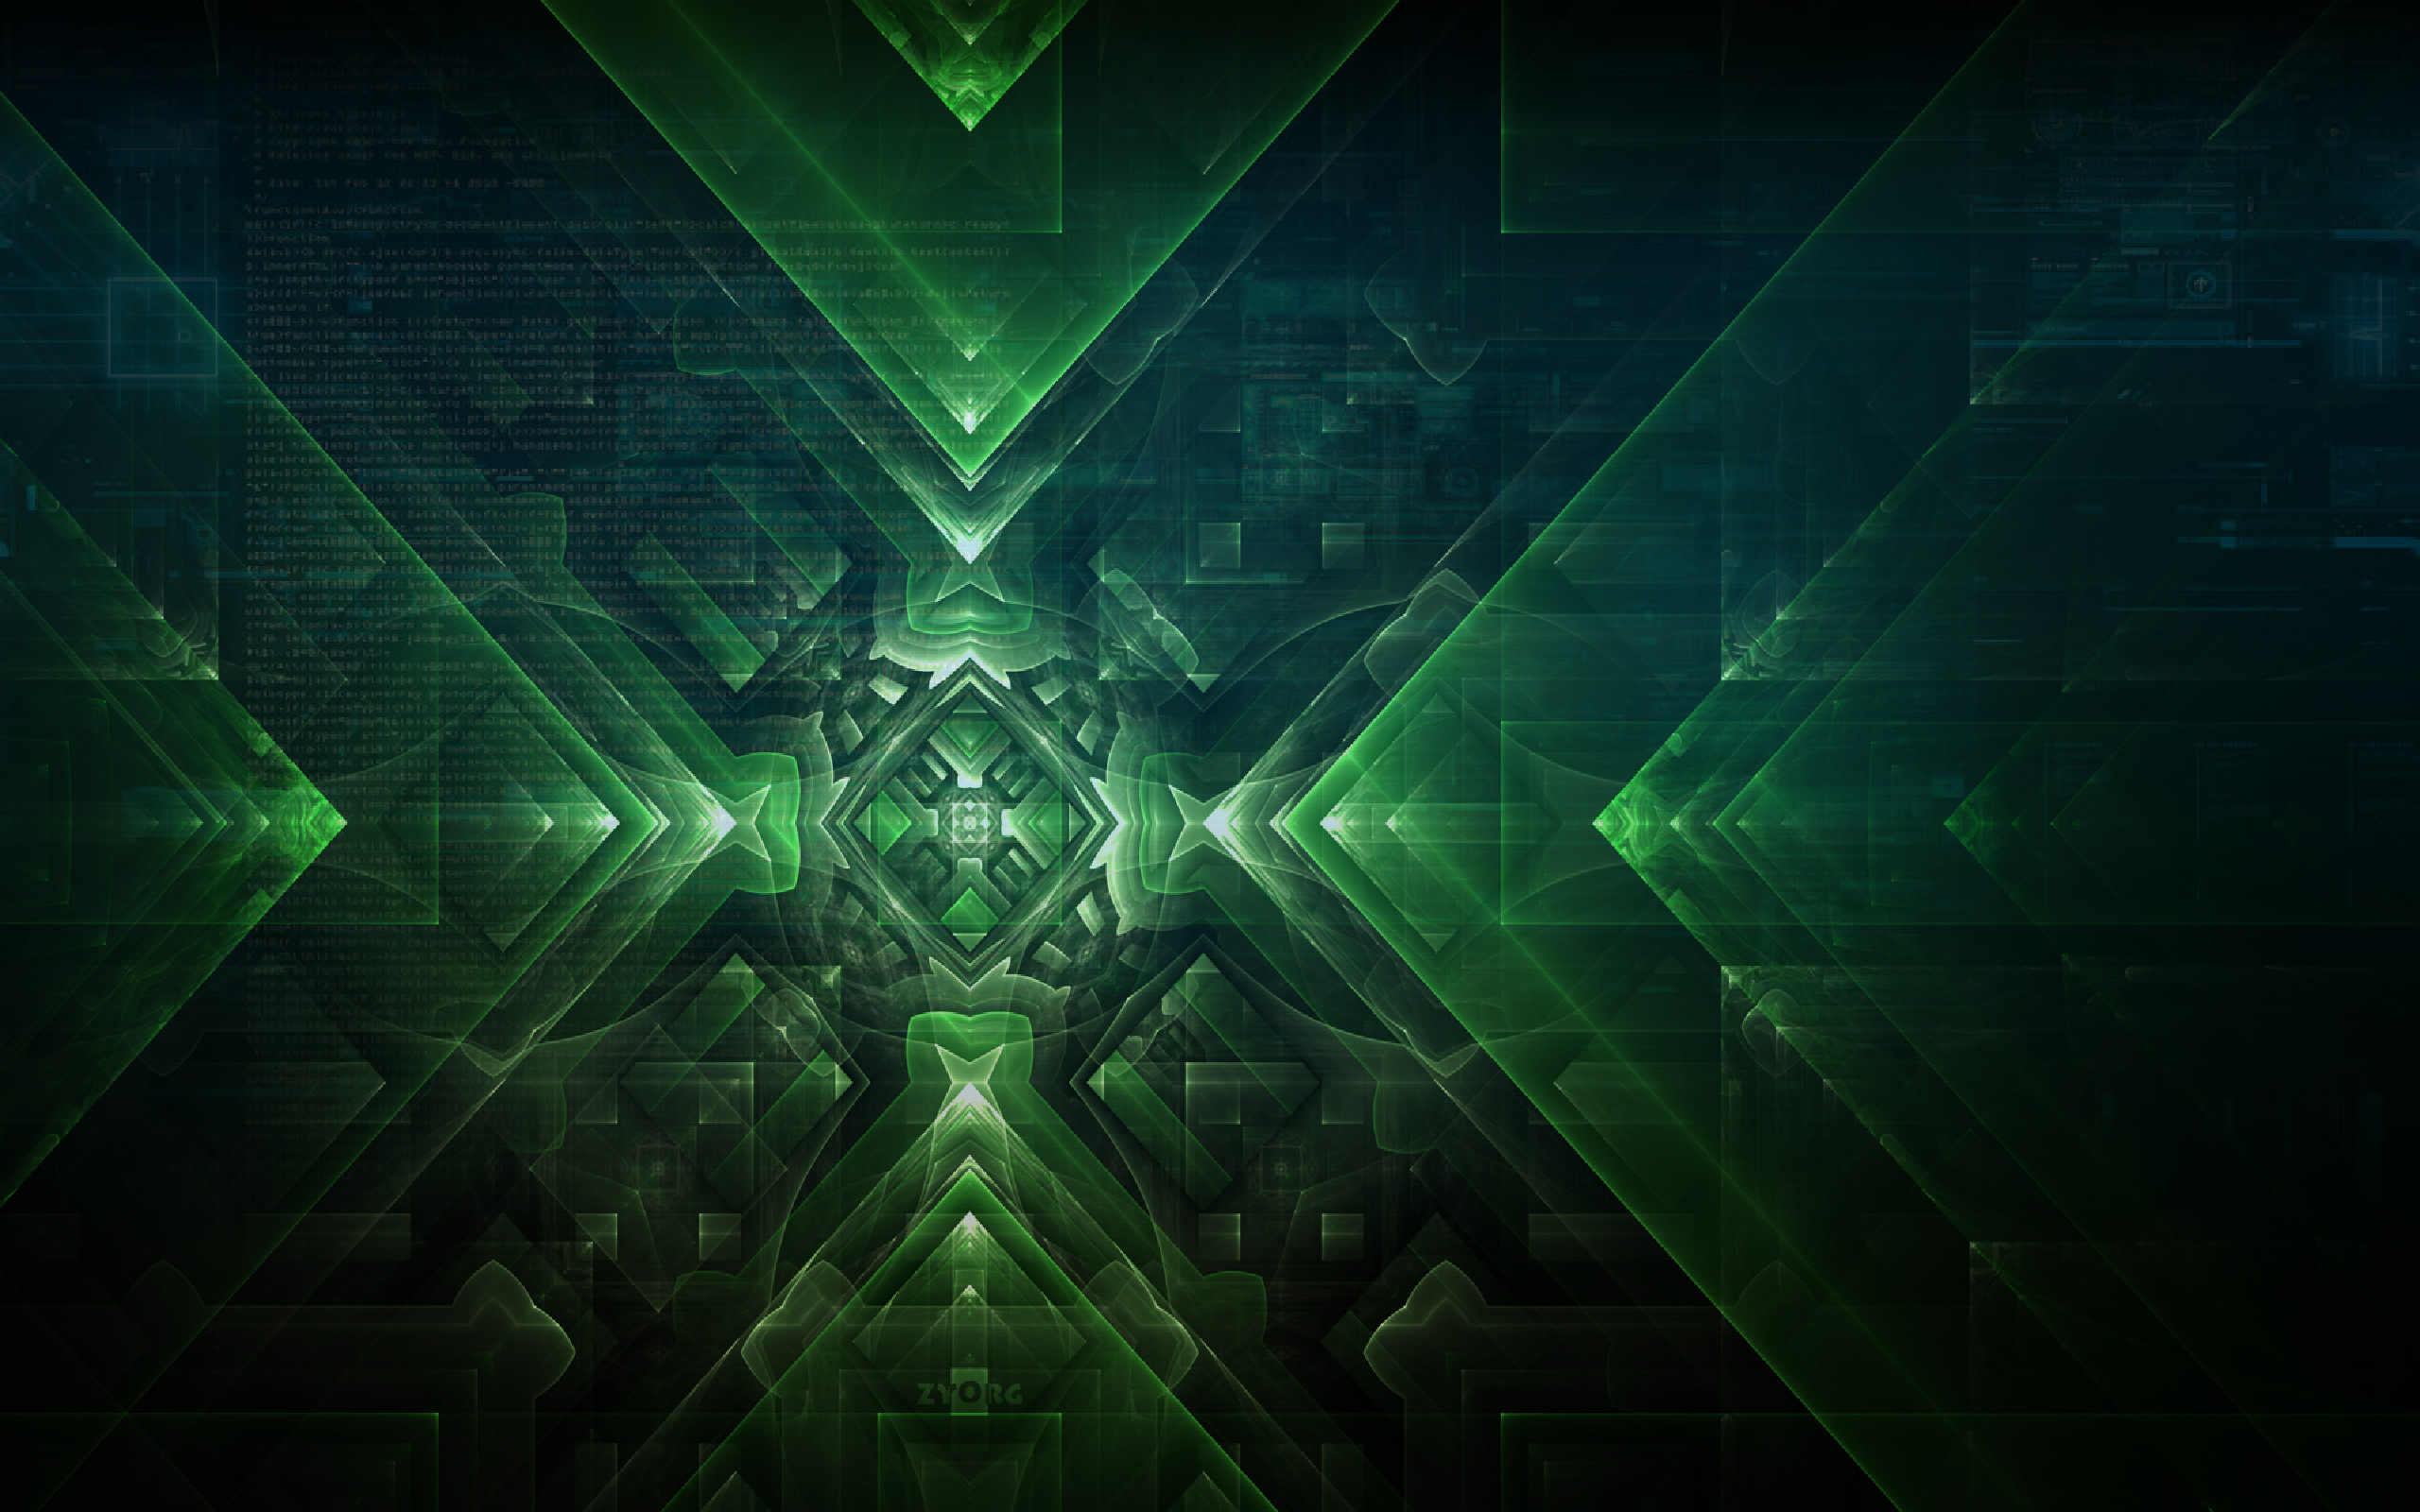 Abstract Technology Wallpaper Group With 78 Items: Techy Wallpaper ·① WallpaperTag